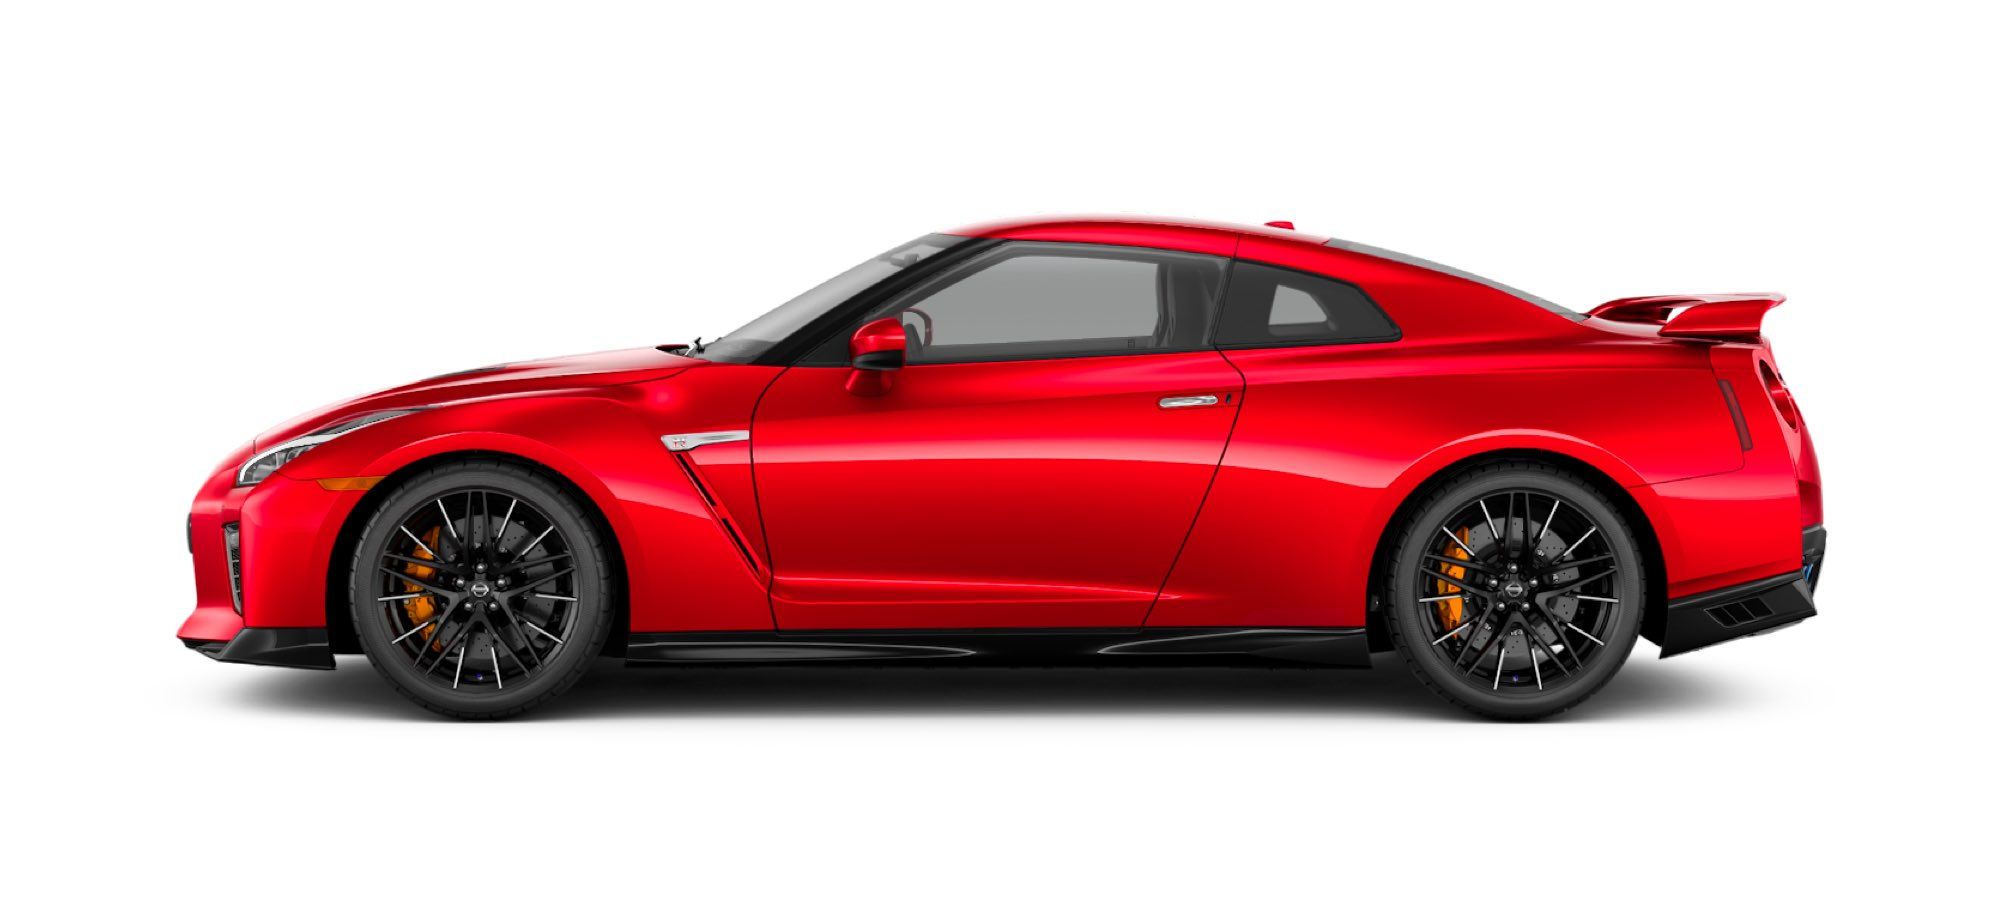 2021 Nissan GT-R in Solid Red